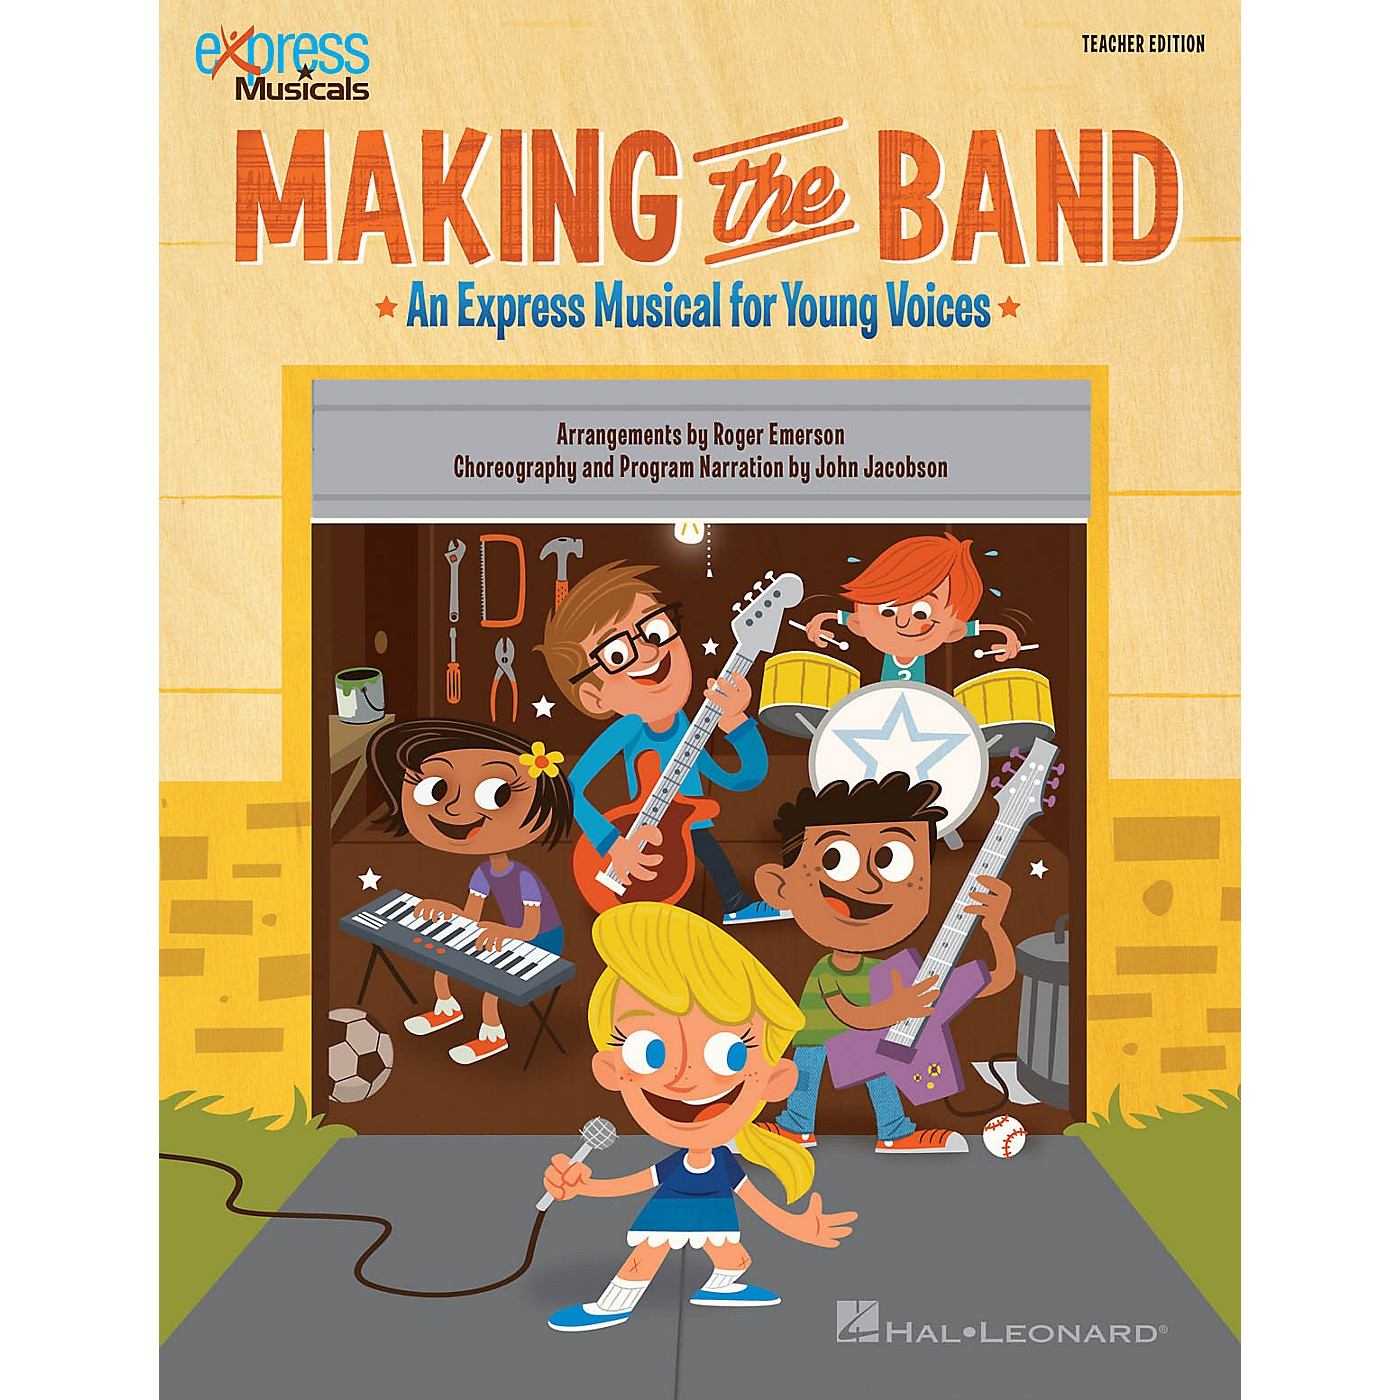 Hal Leonard Making the Band (Express Musical for Young Voices) singer 20 pak Arranged by Roger Emerson thumbnail